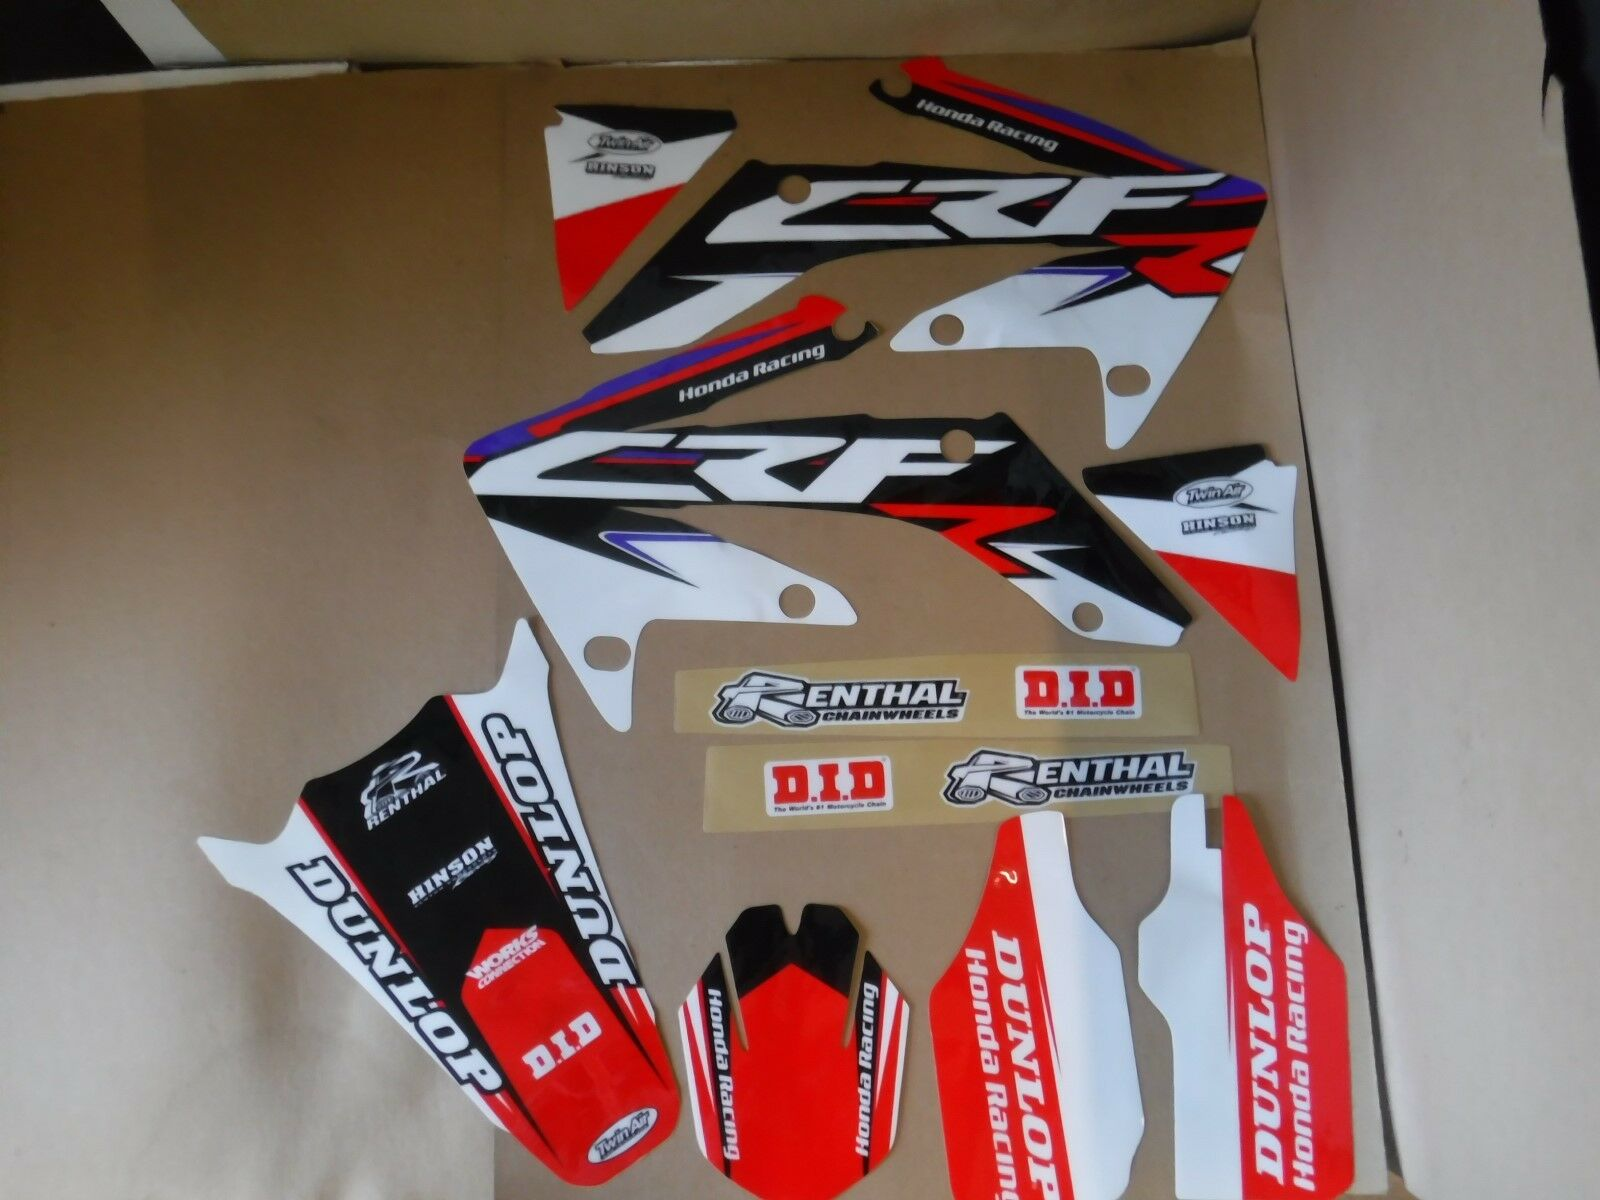 TEAM HONDA RACING PTS GRAPHICS  HONDA CRF250R  2004 2005 2006 2007 2008 2009 4